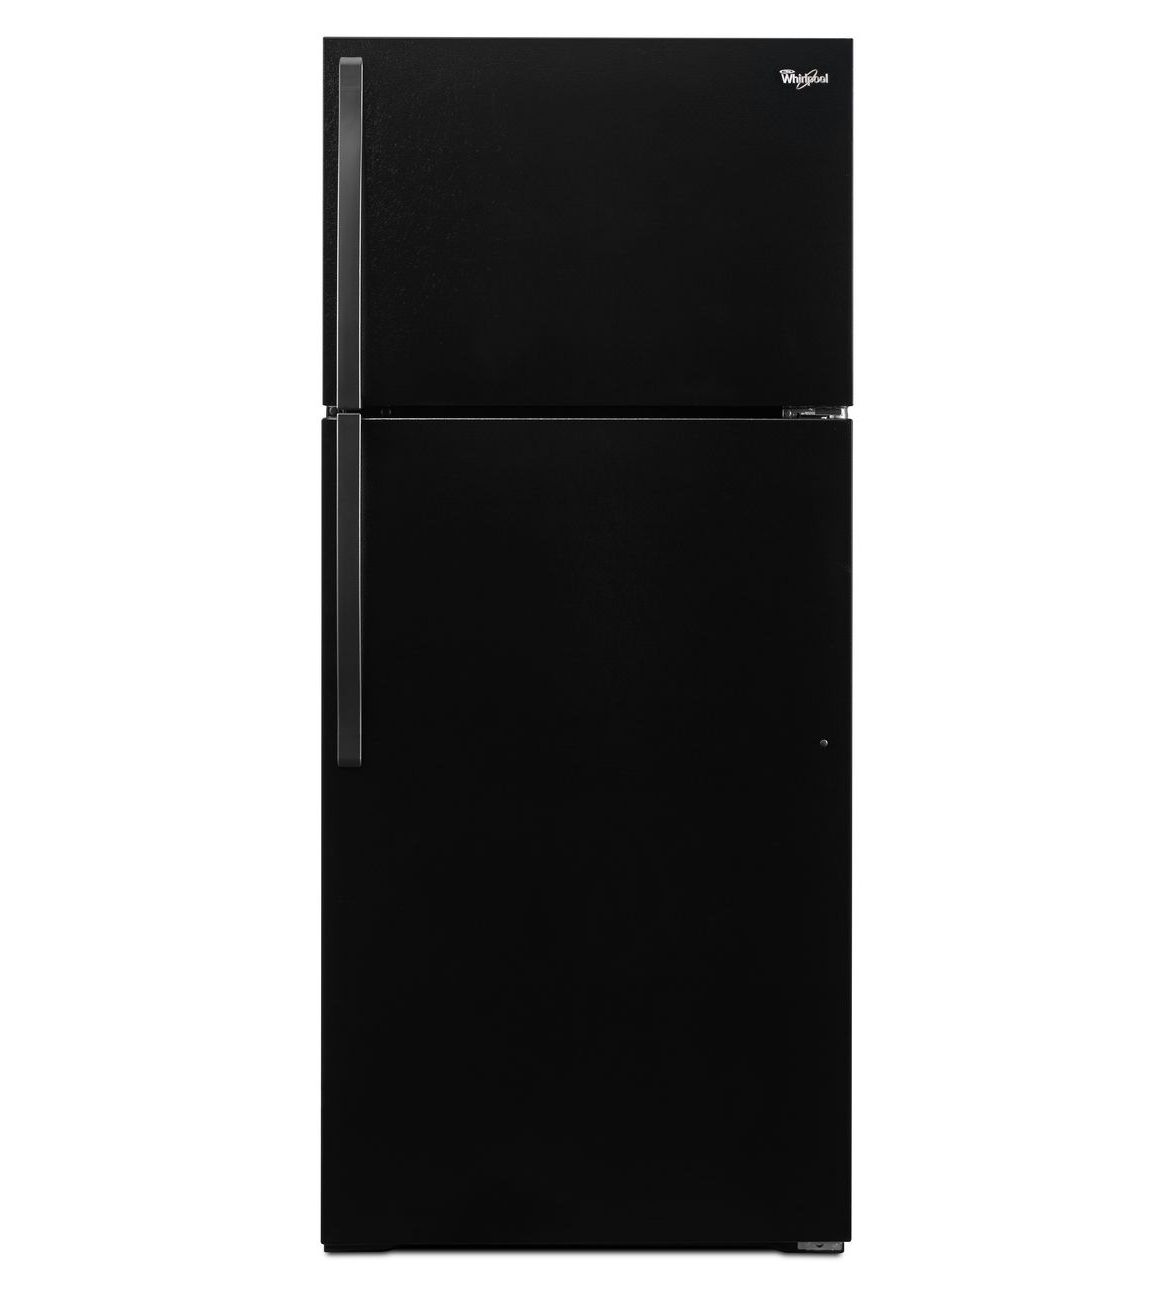 28-inches Wide Top-Freezer Refrigerator